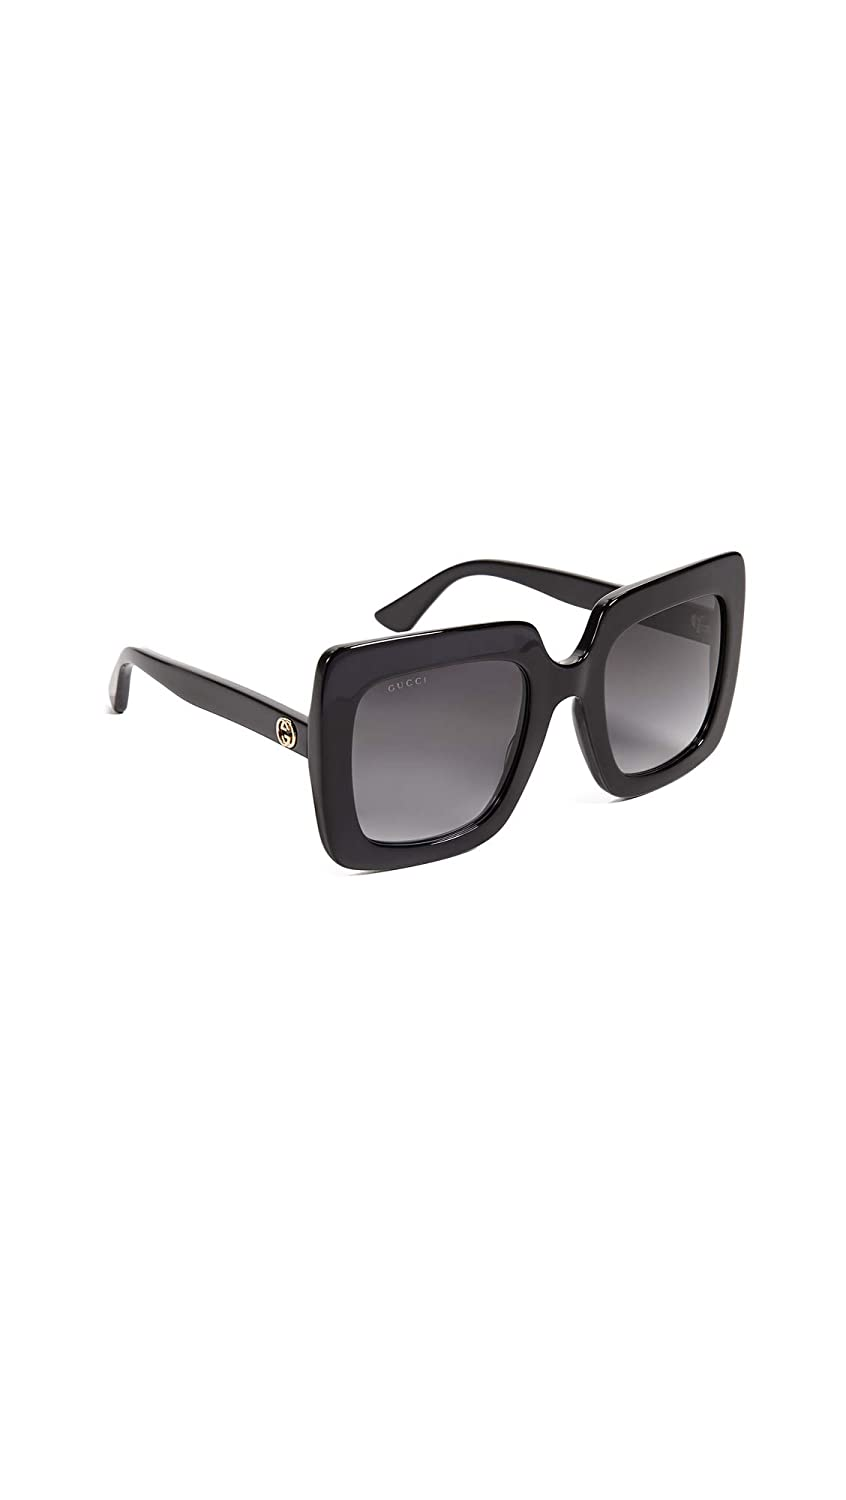 d449cb54b0 Amazon.com  Gucci GG0328S 001 Black GG0328S Square Sunglasses Lens Category  3 Size 53mm  Gucci  Clothing